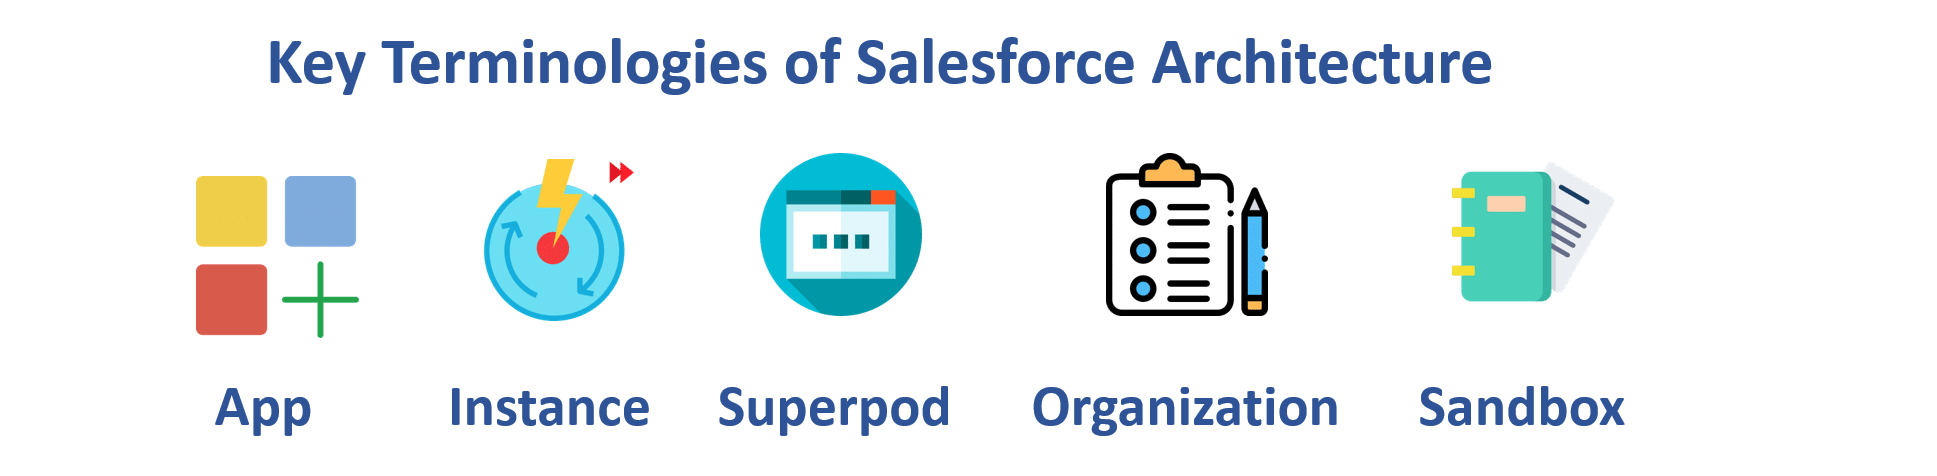 discussing the Salesforce architecture